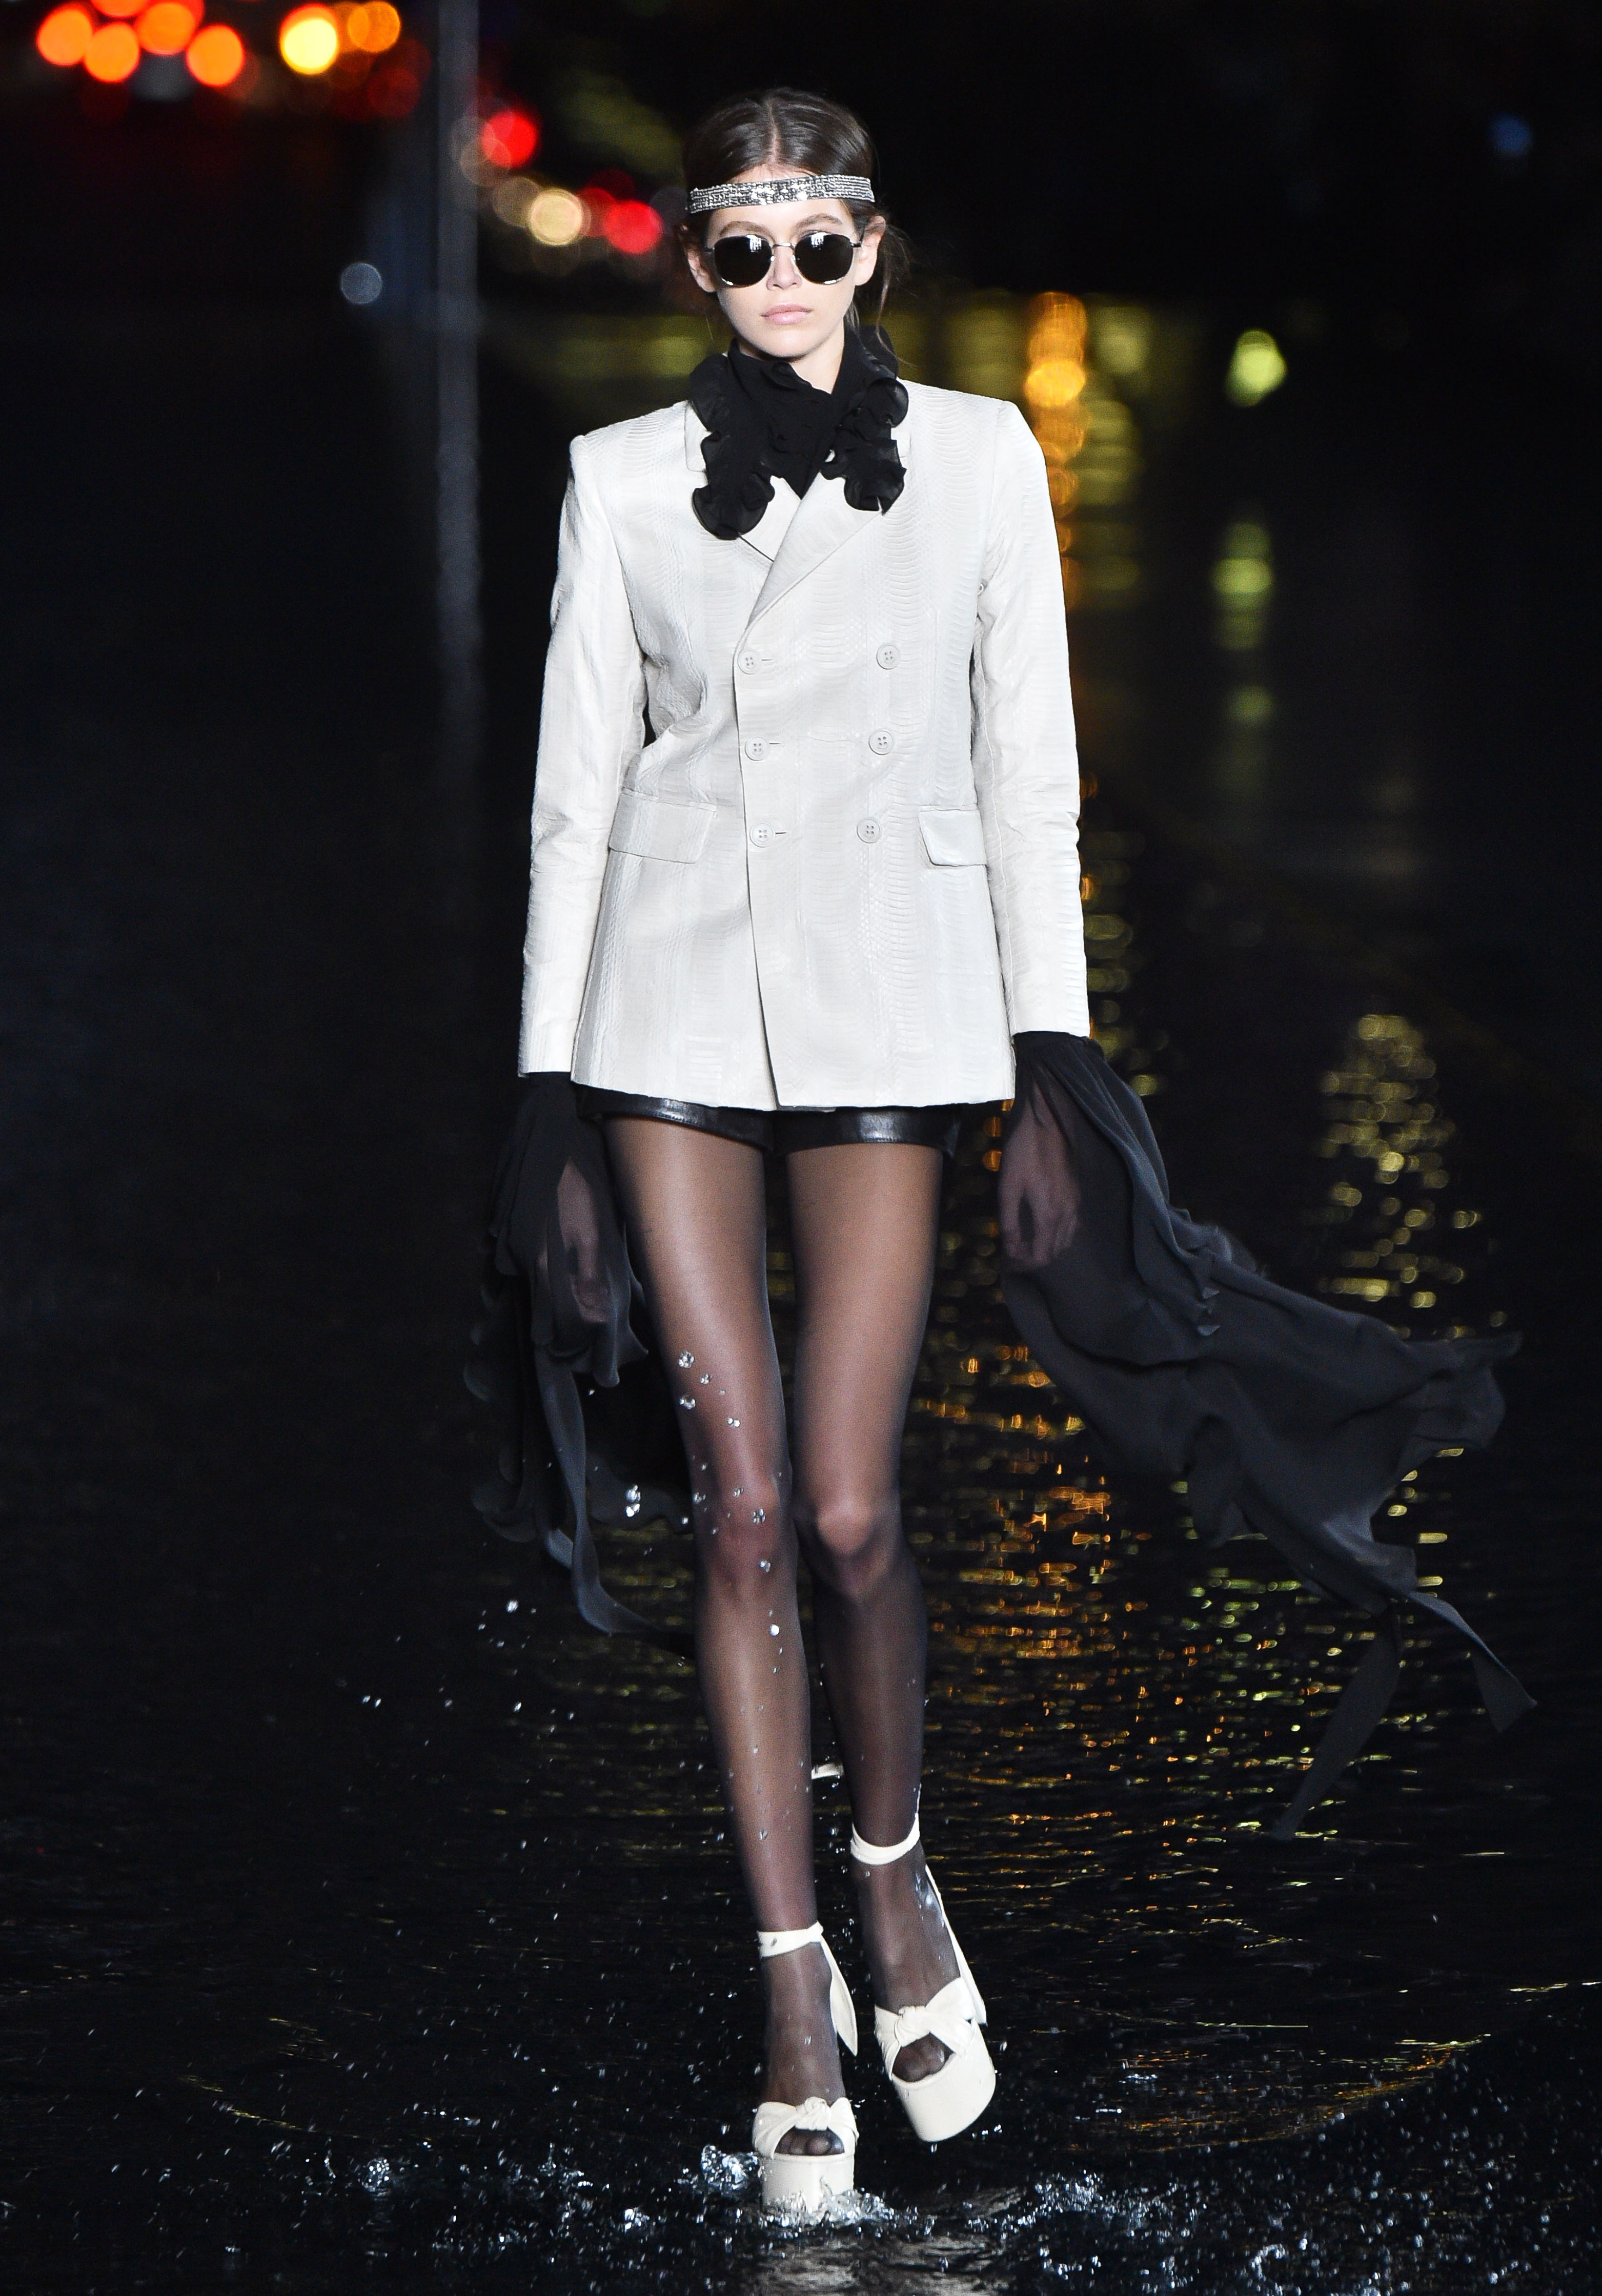 Kaia Gerber - Gerber wore an ivory blazer, a black scarf and vintage-inspired accessories during the Spring-Summer 2019 Saint Laurent show during Paris Fashion Week.